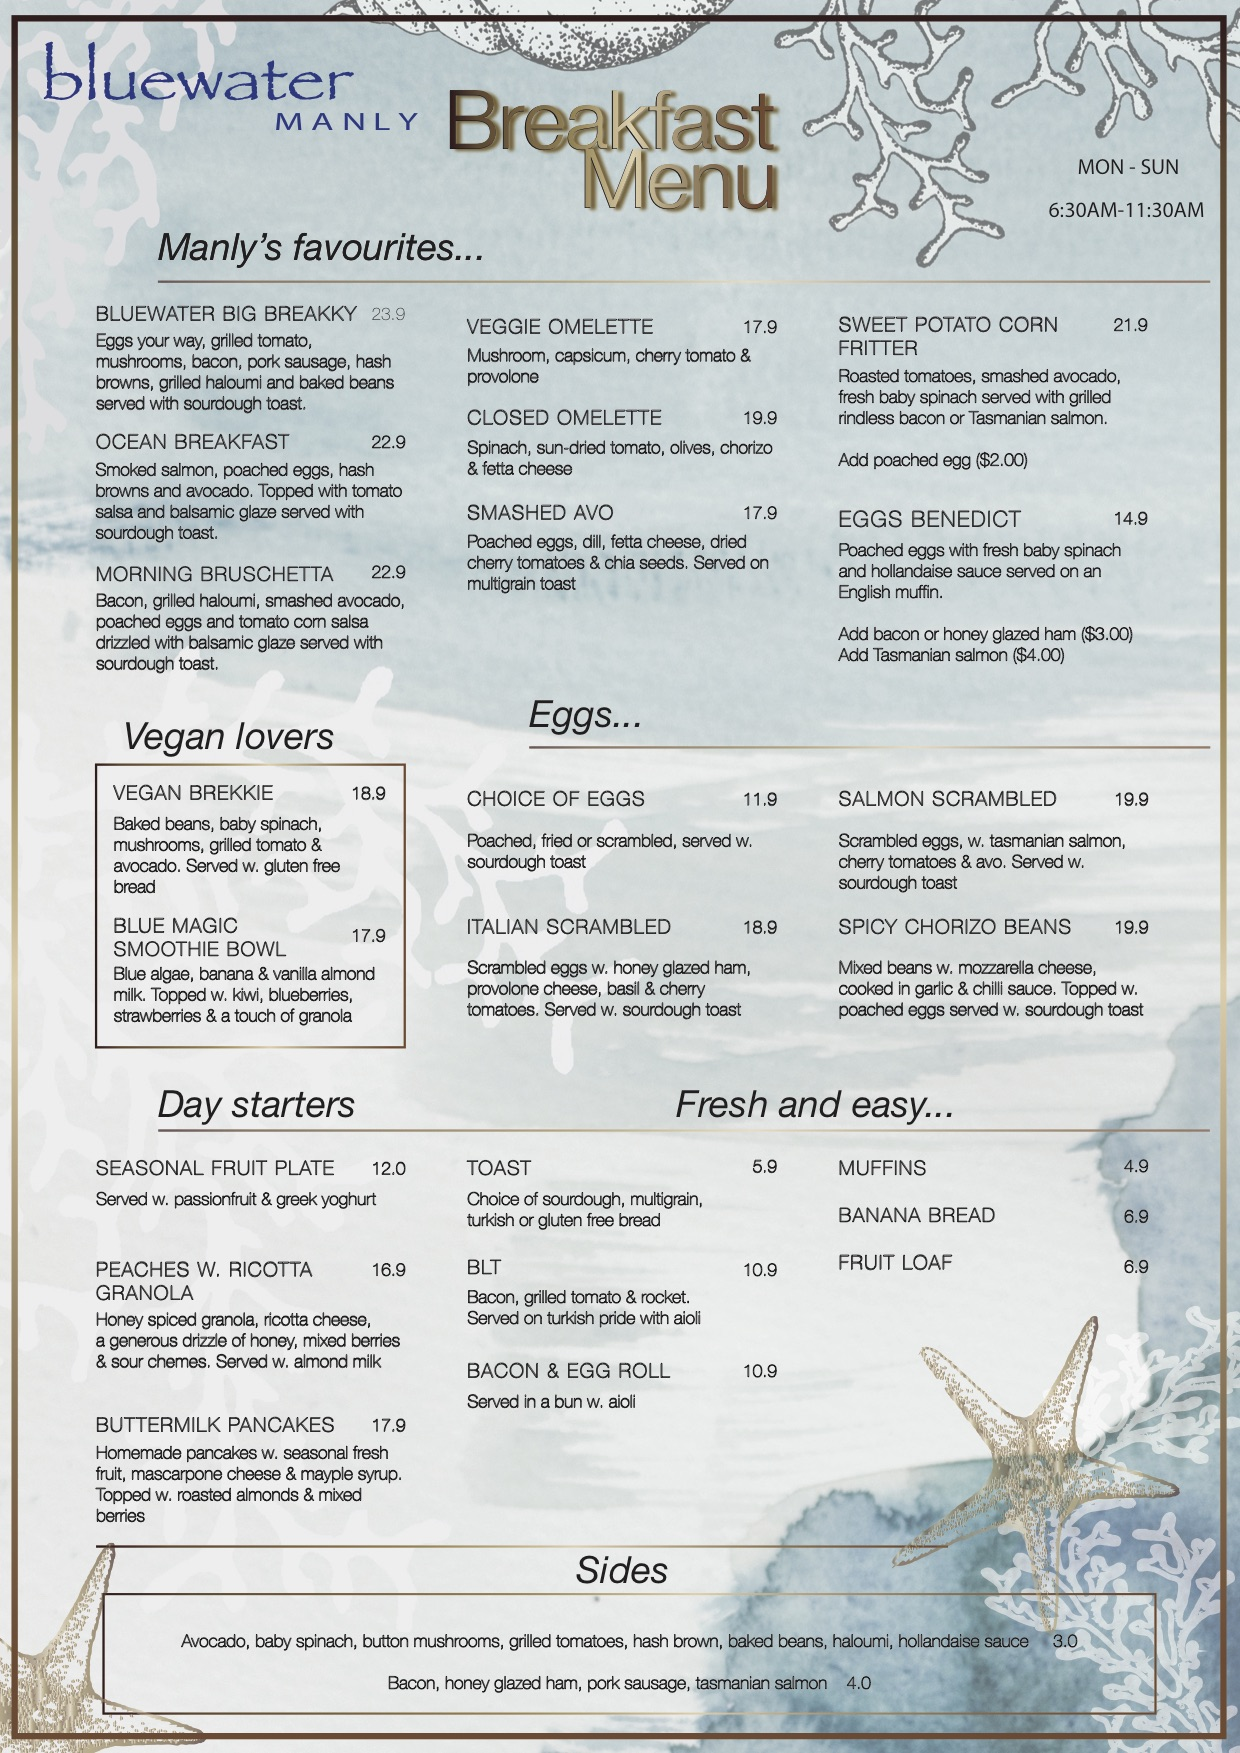 Bluewater Cafe Manly Breakfast Menu